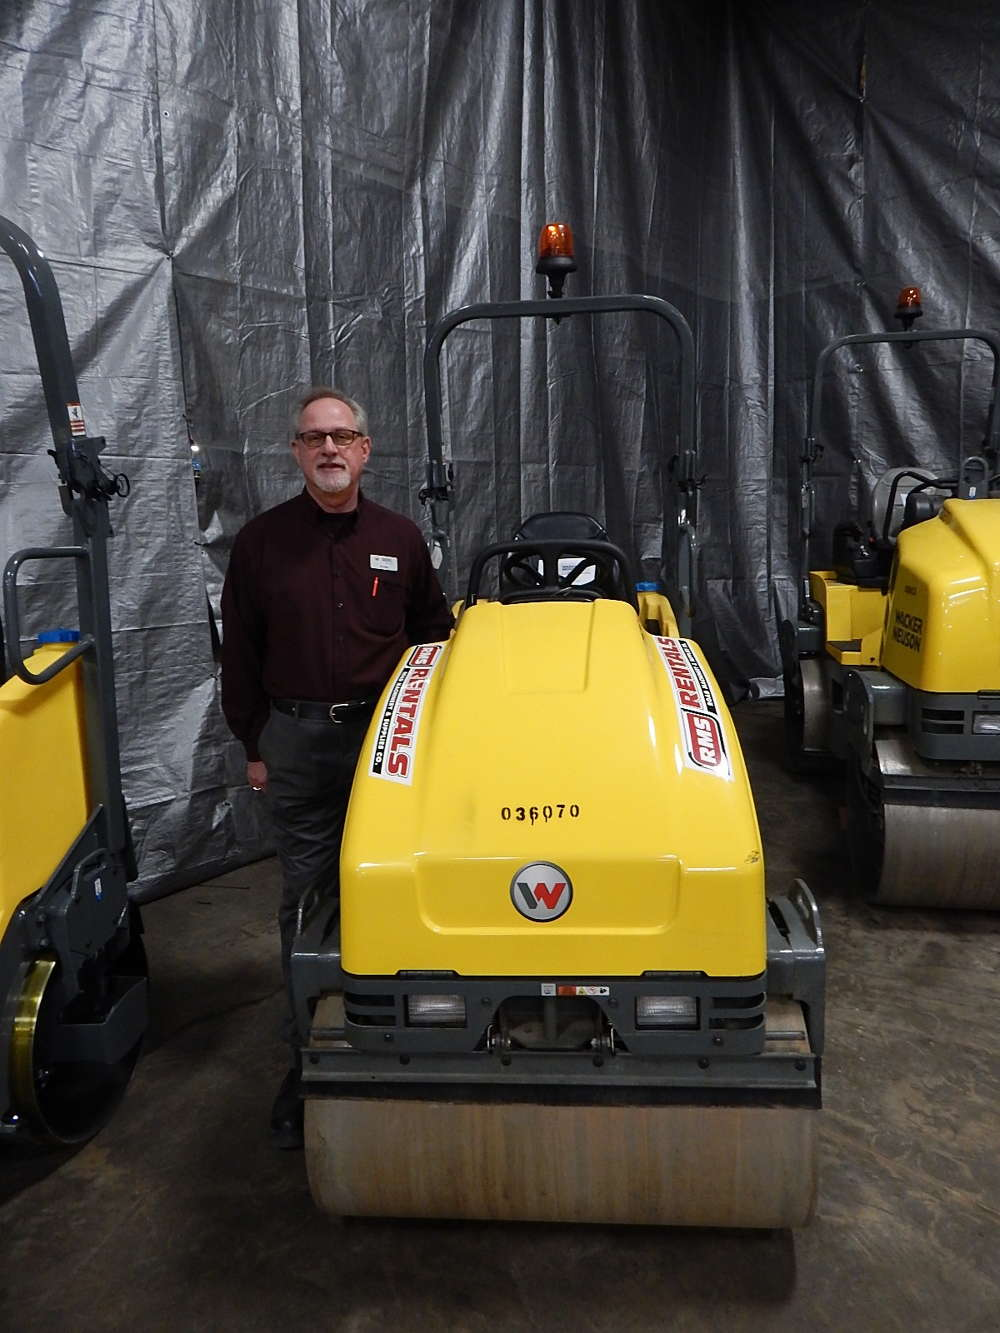 Al Voeltz, Wacker Nueson district territory representative, stands with a RD16-100 diesel asphalt roller at the RMS Rentals annual open house.